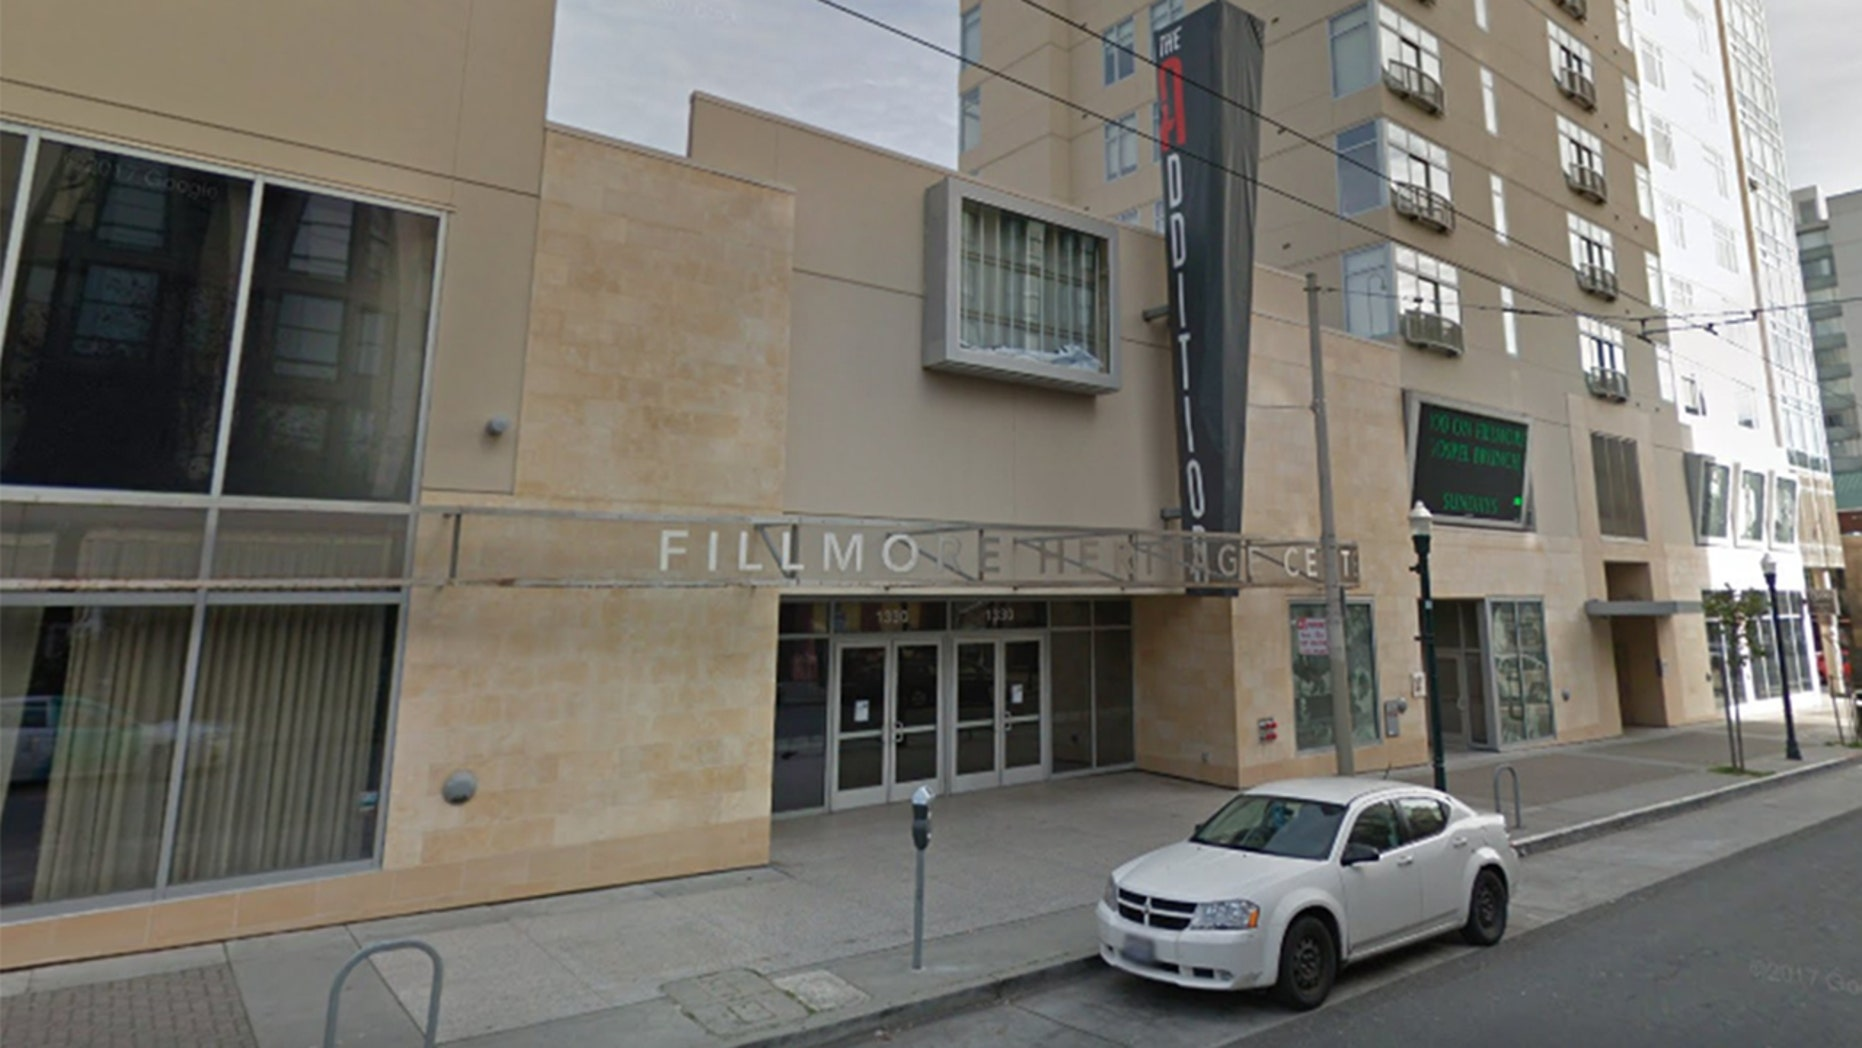 A shooting in San Francisco's outside the Fillmore Heritage Center on Saturday night has left one person dead and at least three more injured, one critically, police say